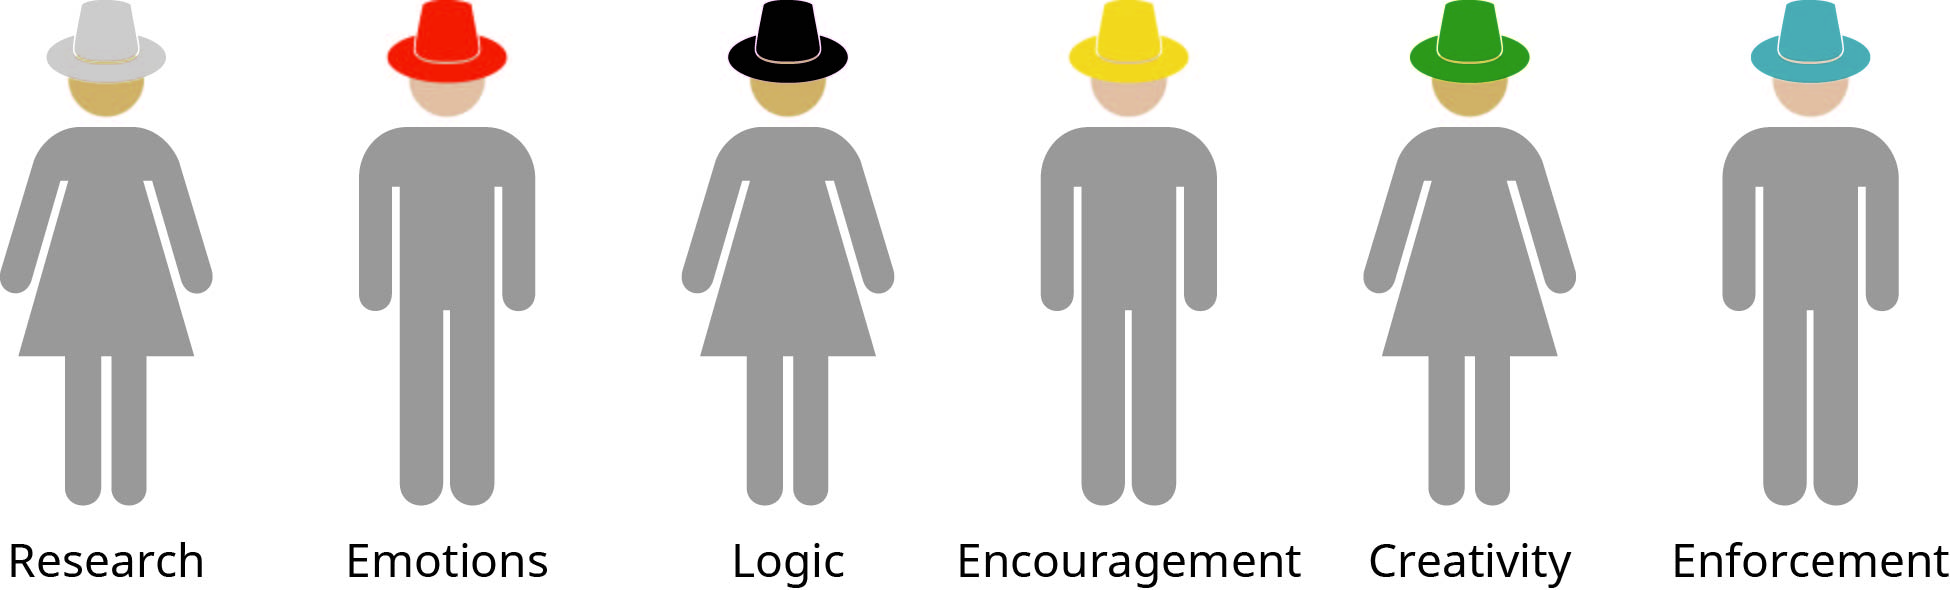 Cartoon of figures wearing different colored hats: White is research, red is emotions, black is logic, yellow is encouragement, green is creativity, and blue is enforcement.